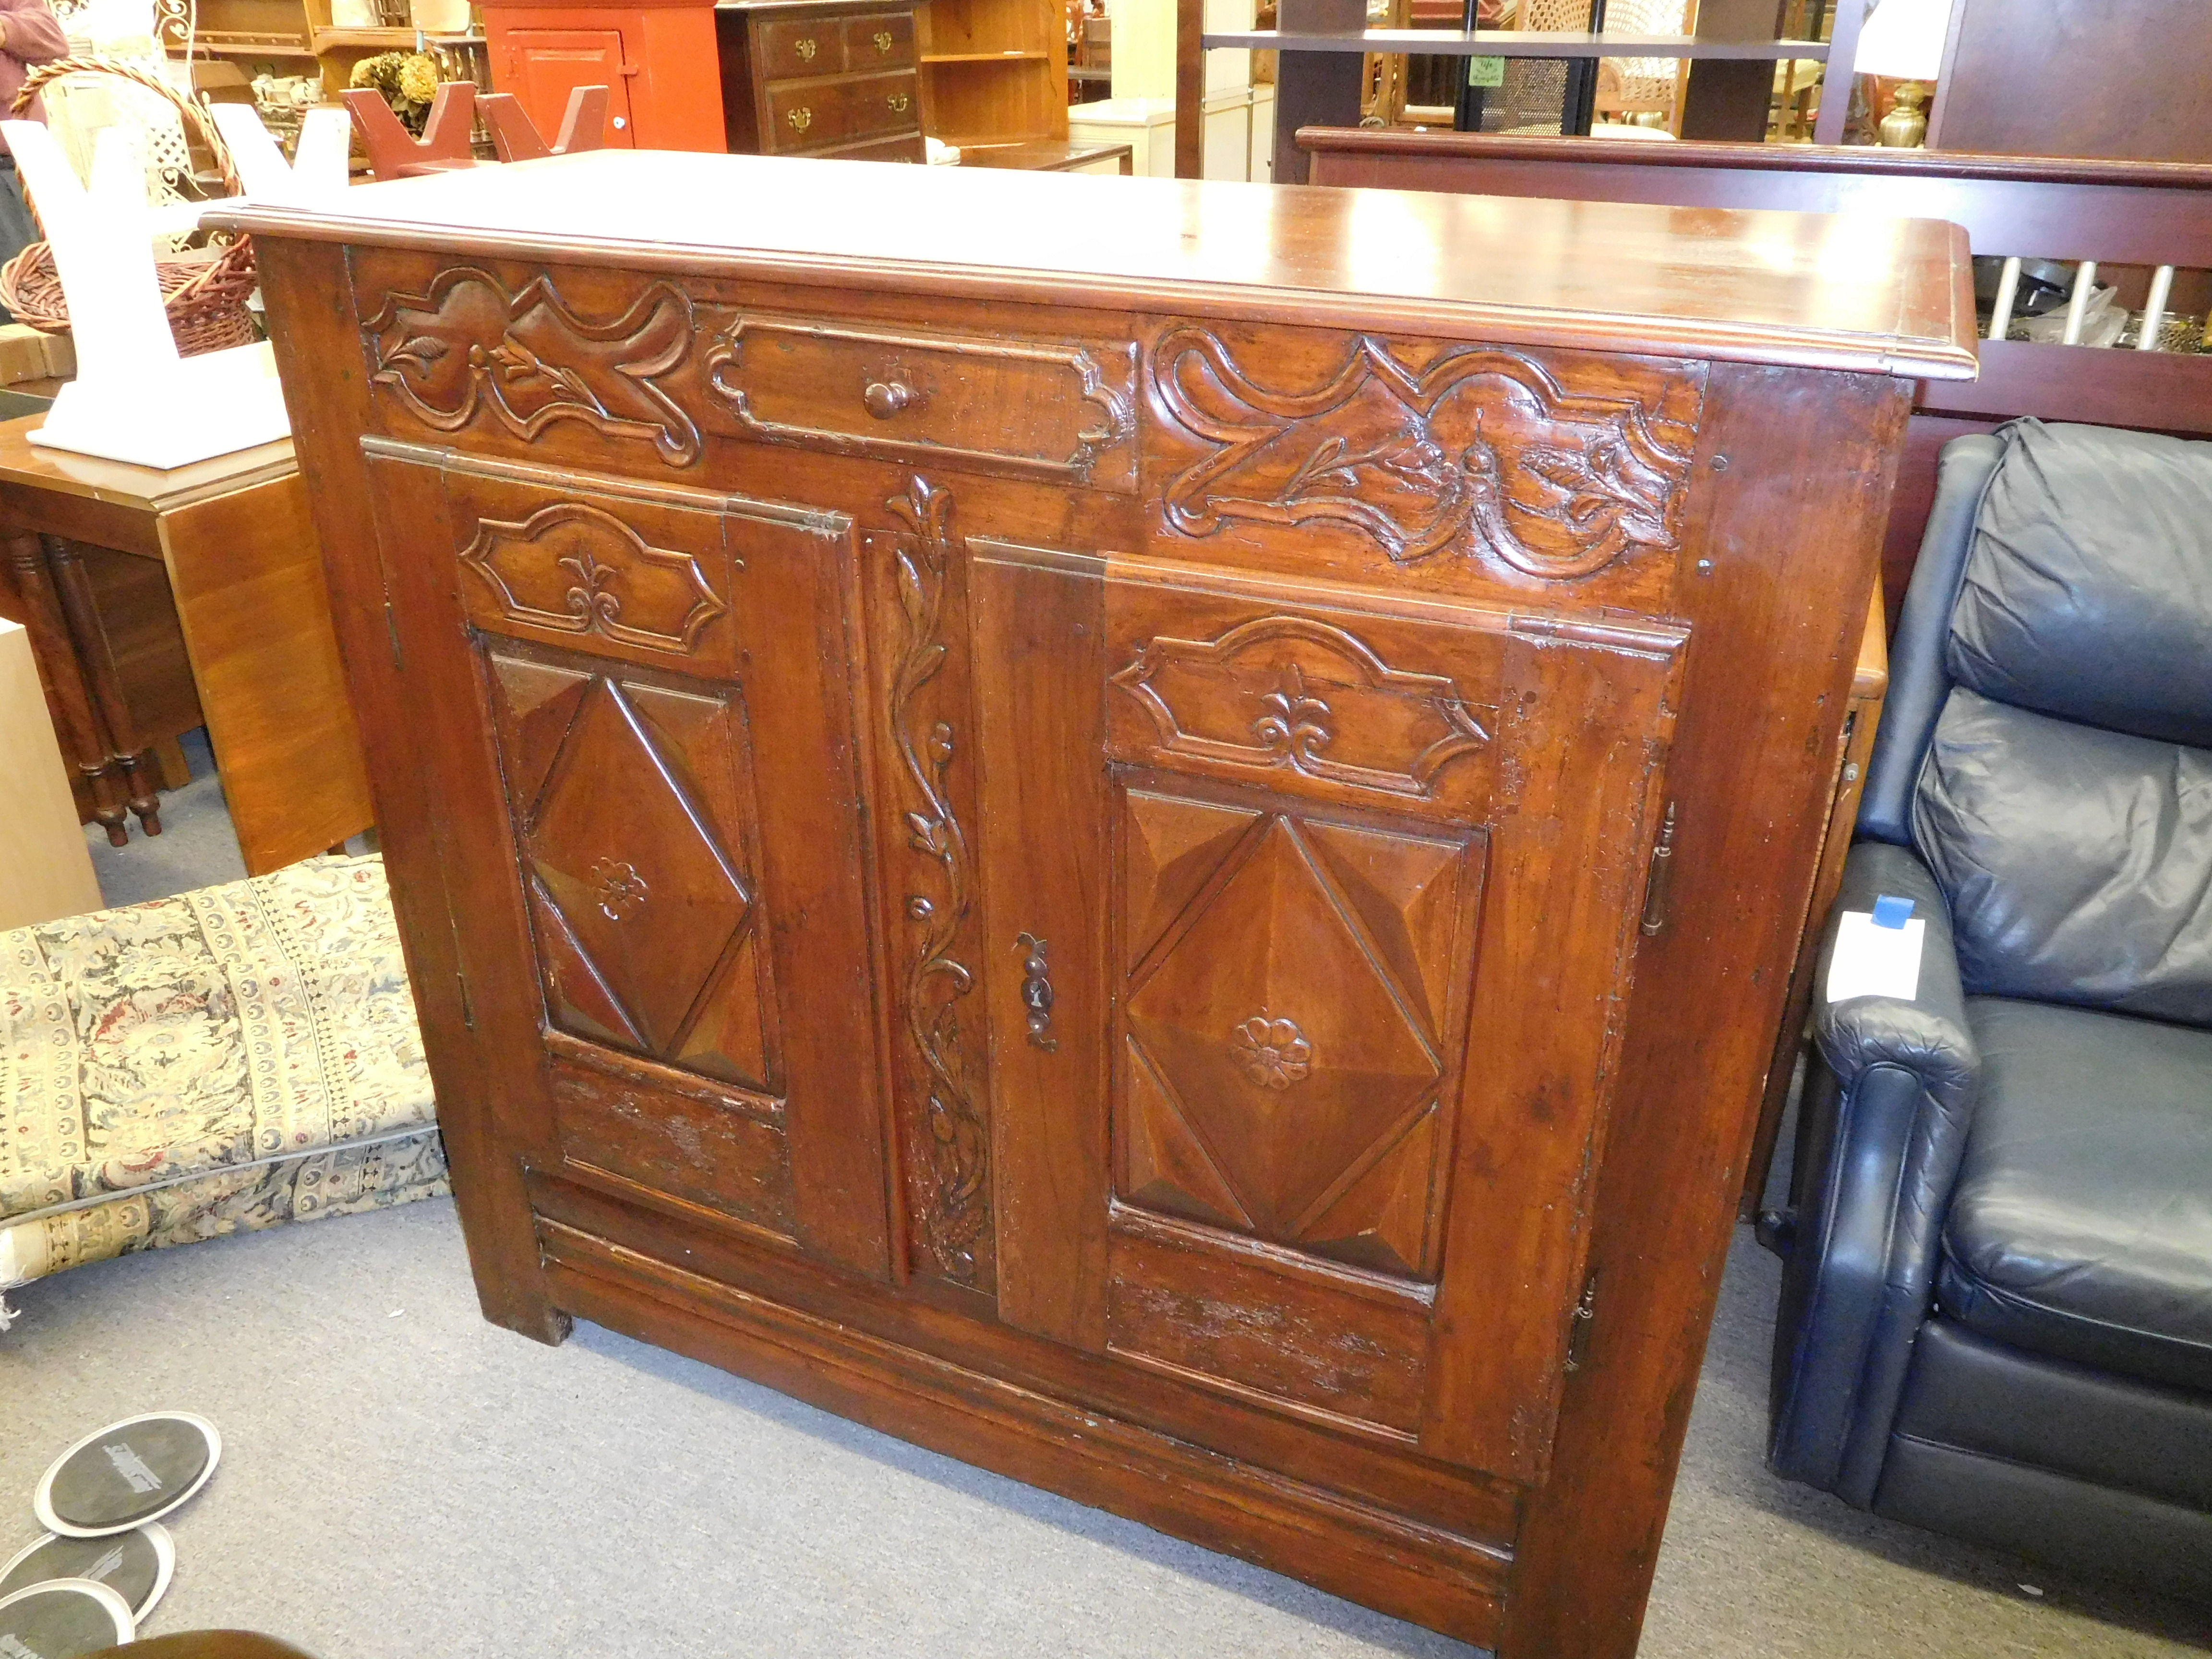 Rare Antique Wormy Chestnut French Cabinet